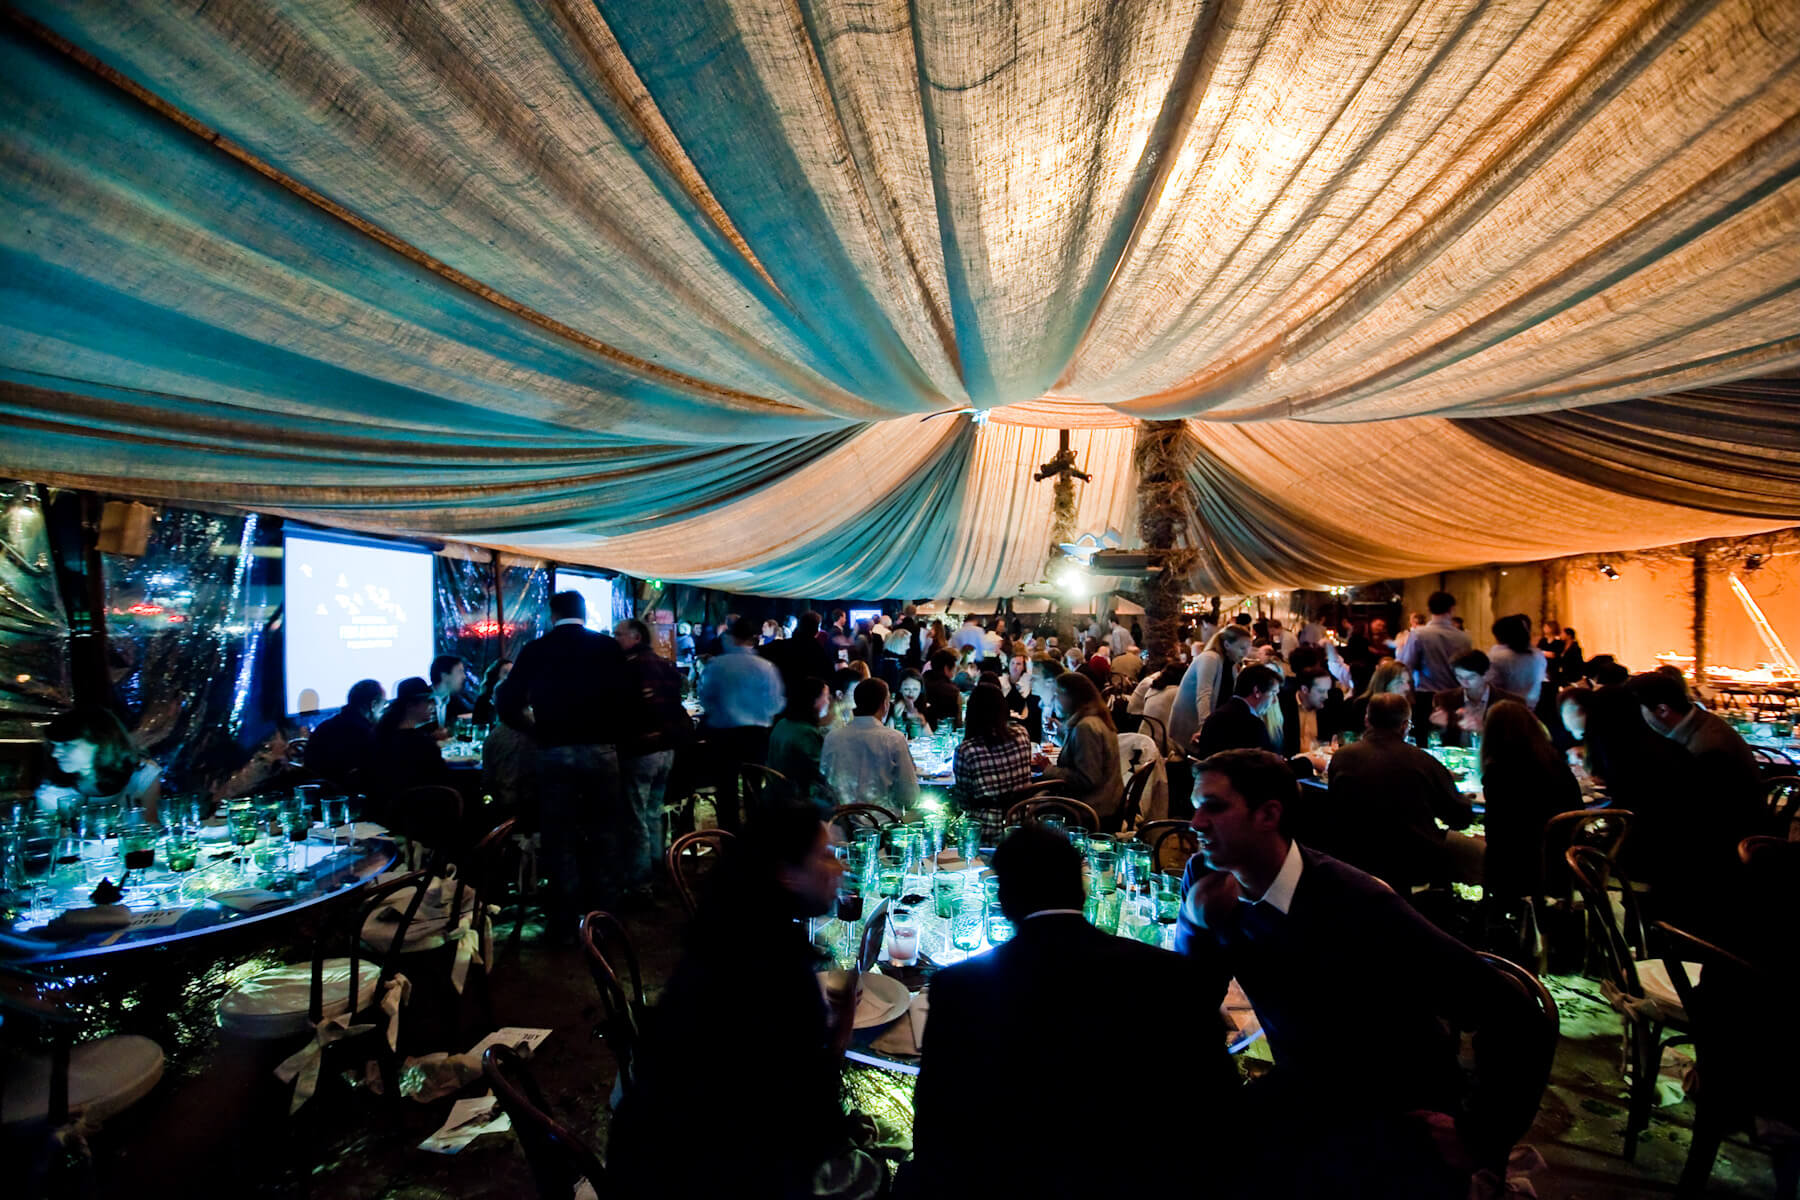 Blue and white draped ceiling above crowds of guests at dinner tables